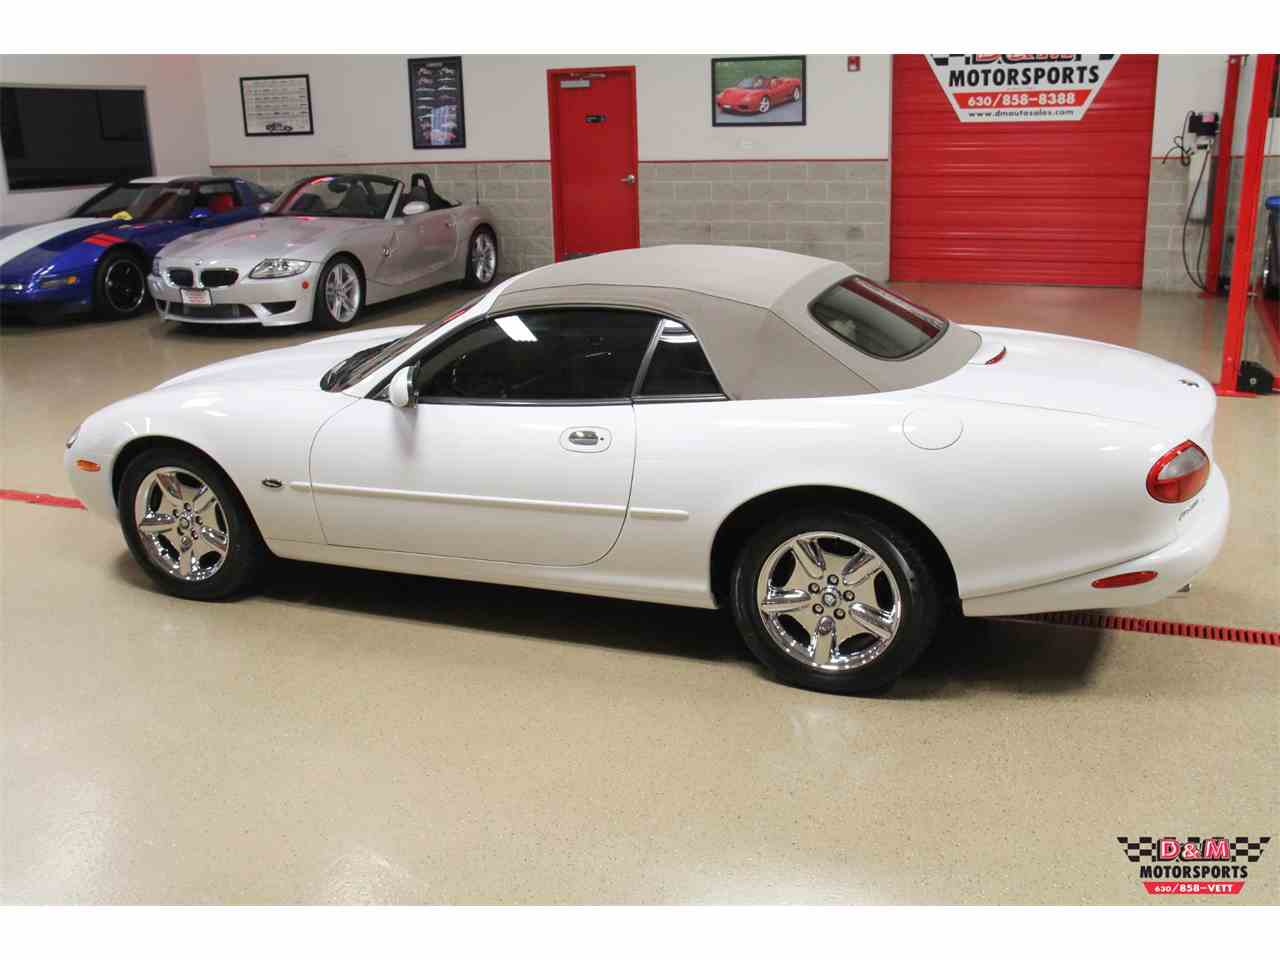 Large Picture of 1998 Jaguar XK8 located in Illinois - $16,995.00 Offered by D & M Motorsports - MCA6